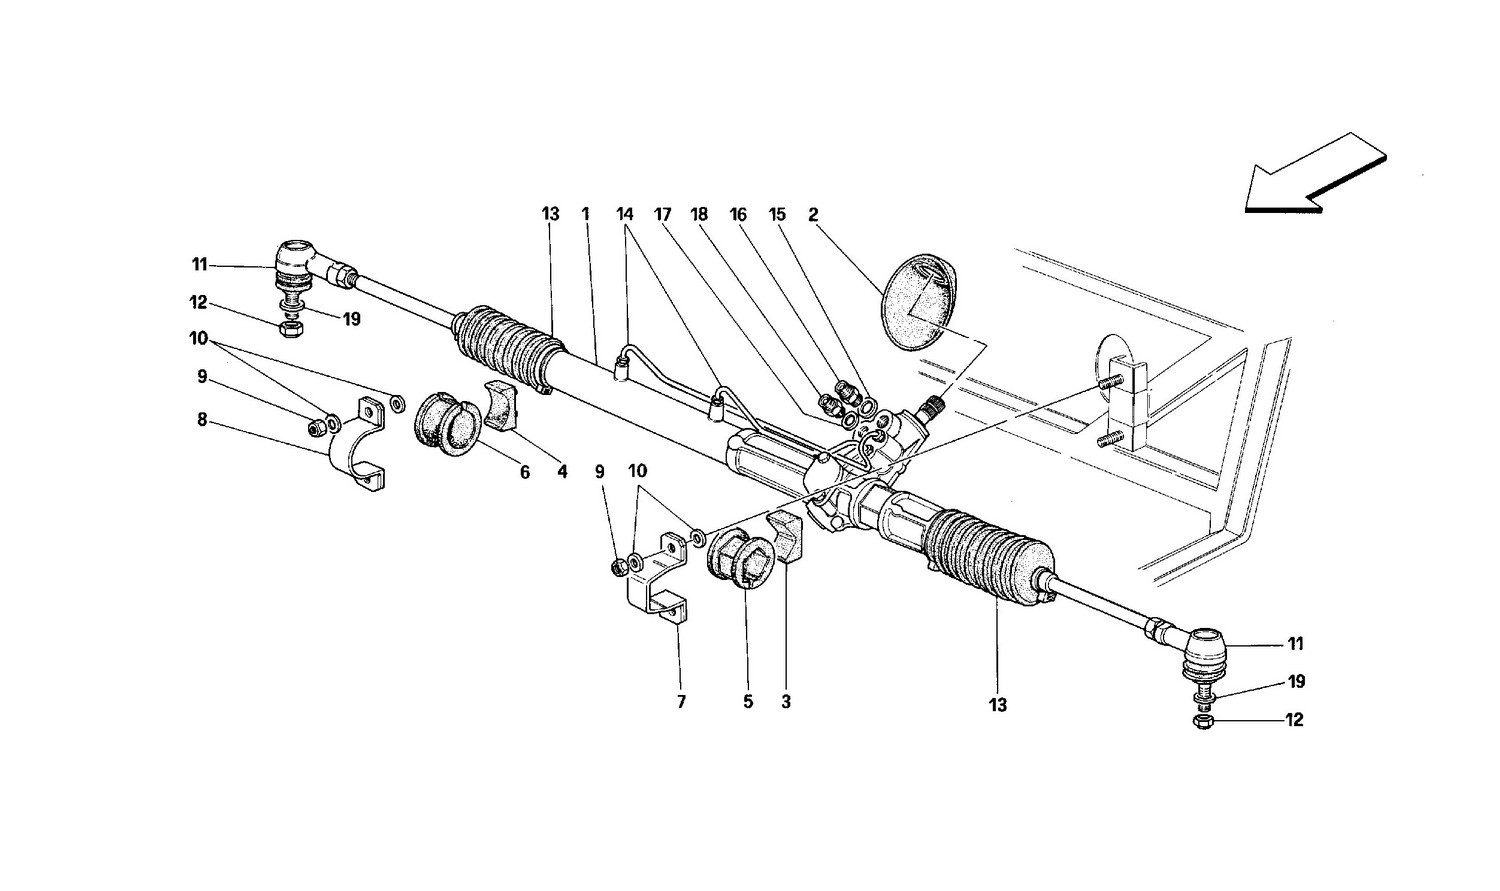 Hydraulic steering box and linkage